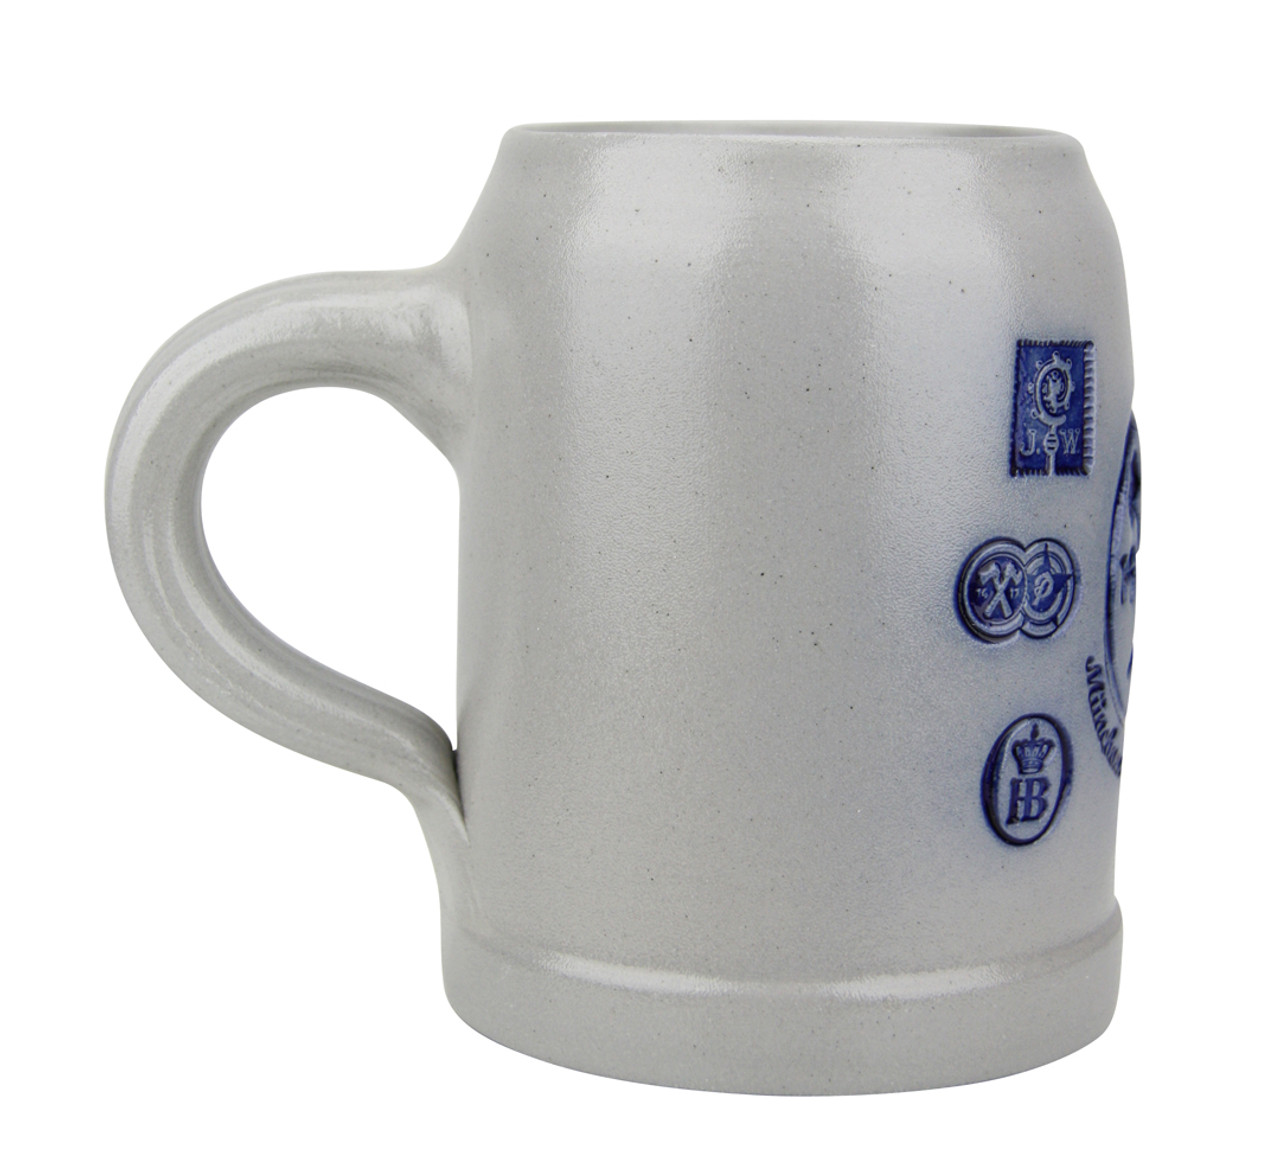 Munich Purity Law 1487 0.5 Liter Salt Glaze Stoneware Beer Mug